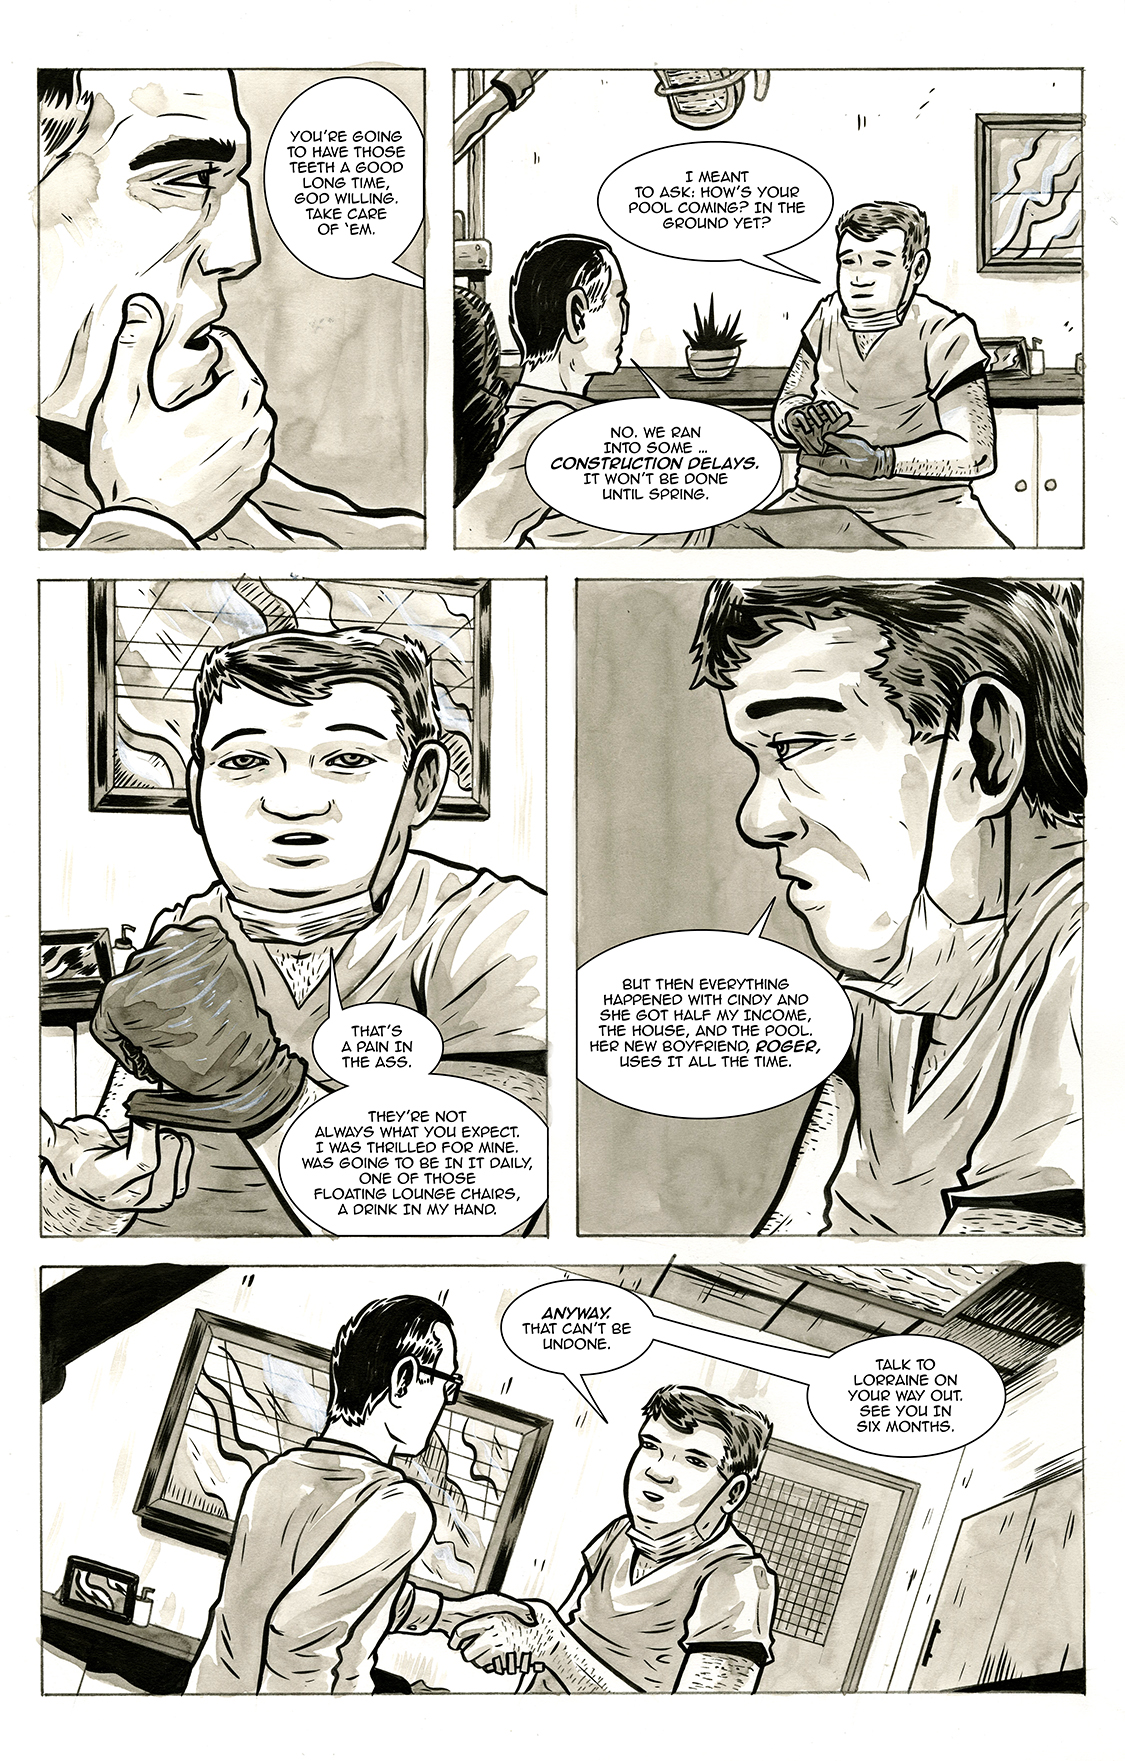 Lone and Level, page 22, by Sam Costello and Max Temescu